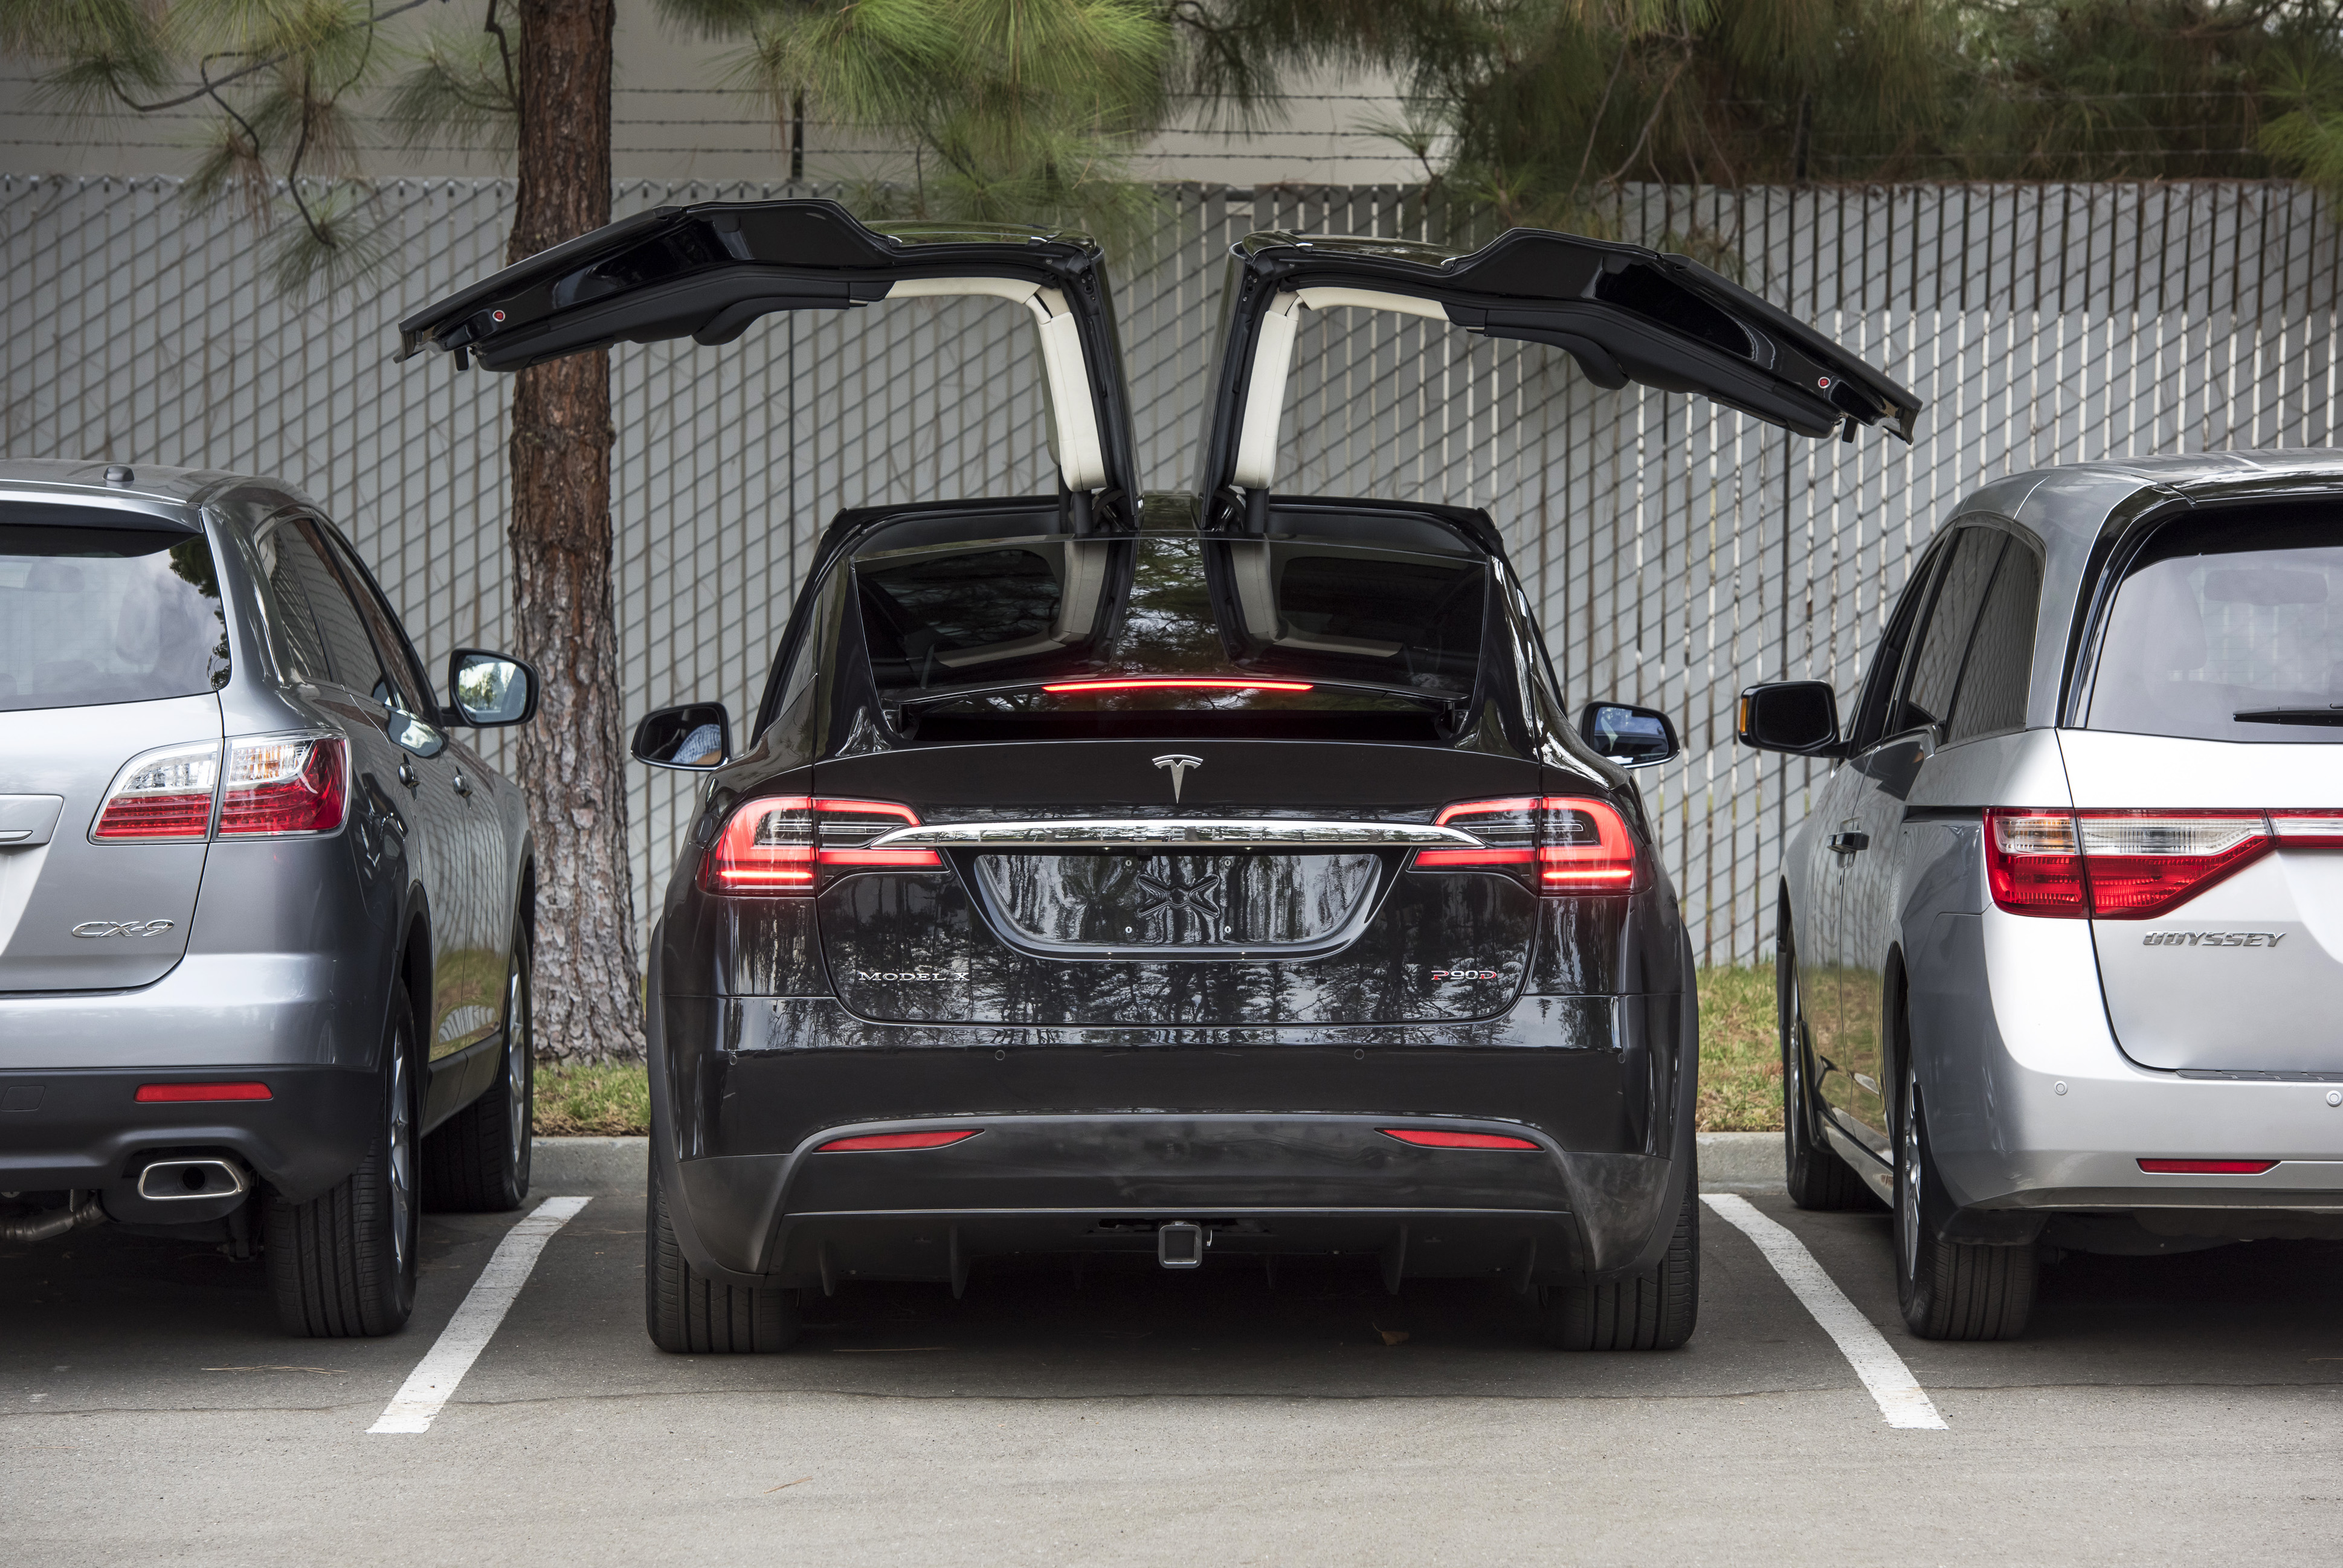 The Tesla Motors Inc. Model X sport utility vehicle (SUV) is displayed during an event in Fremont, California, U.S., on Tuesday, Sept. 29, 2015.